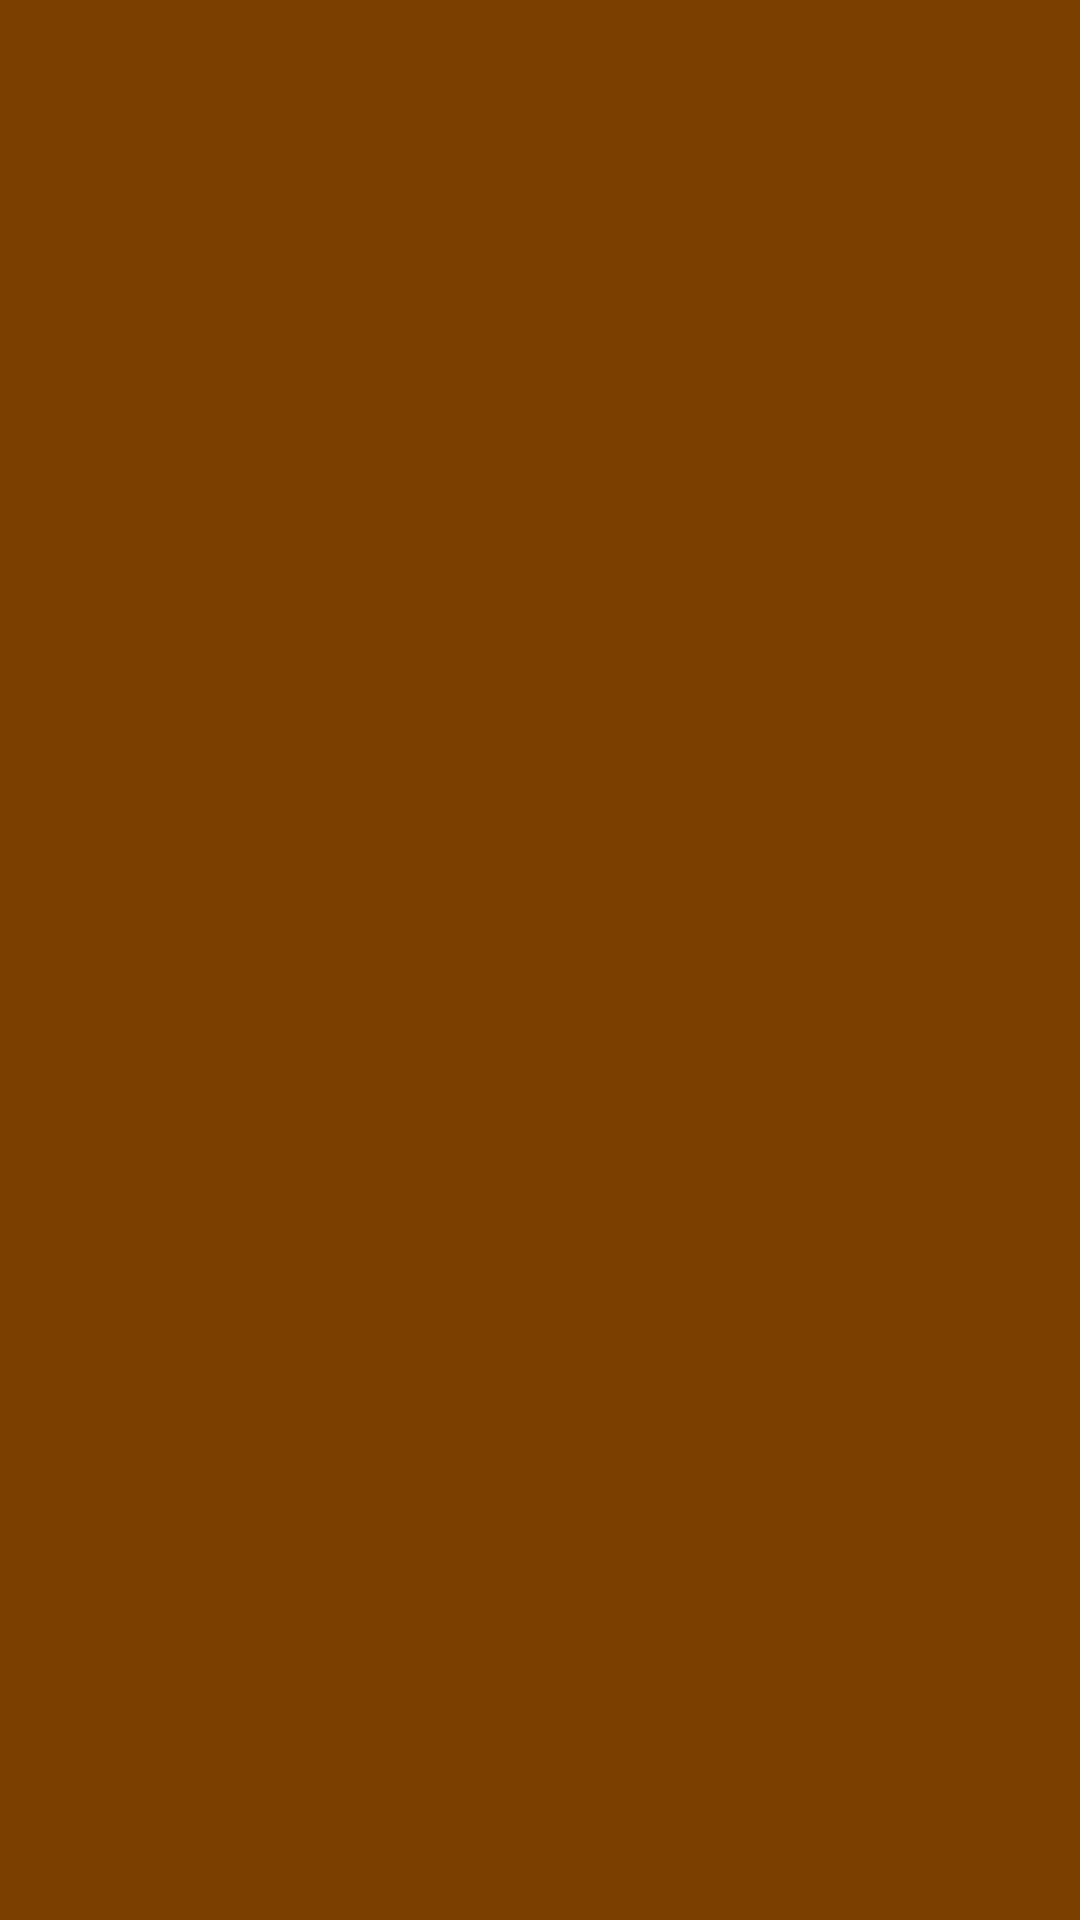 1080x1920 Chocolate Traditional Solid Color Background